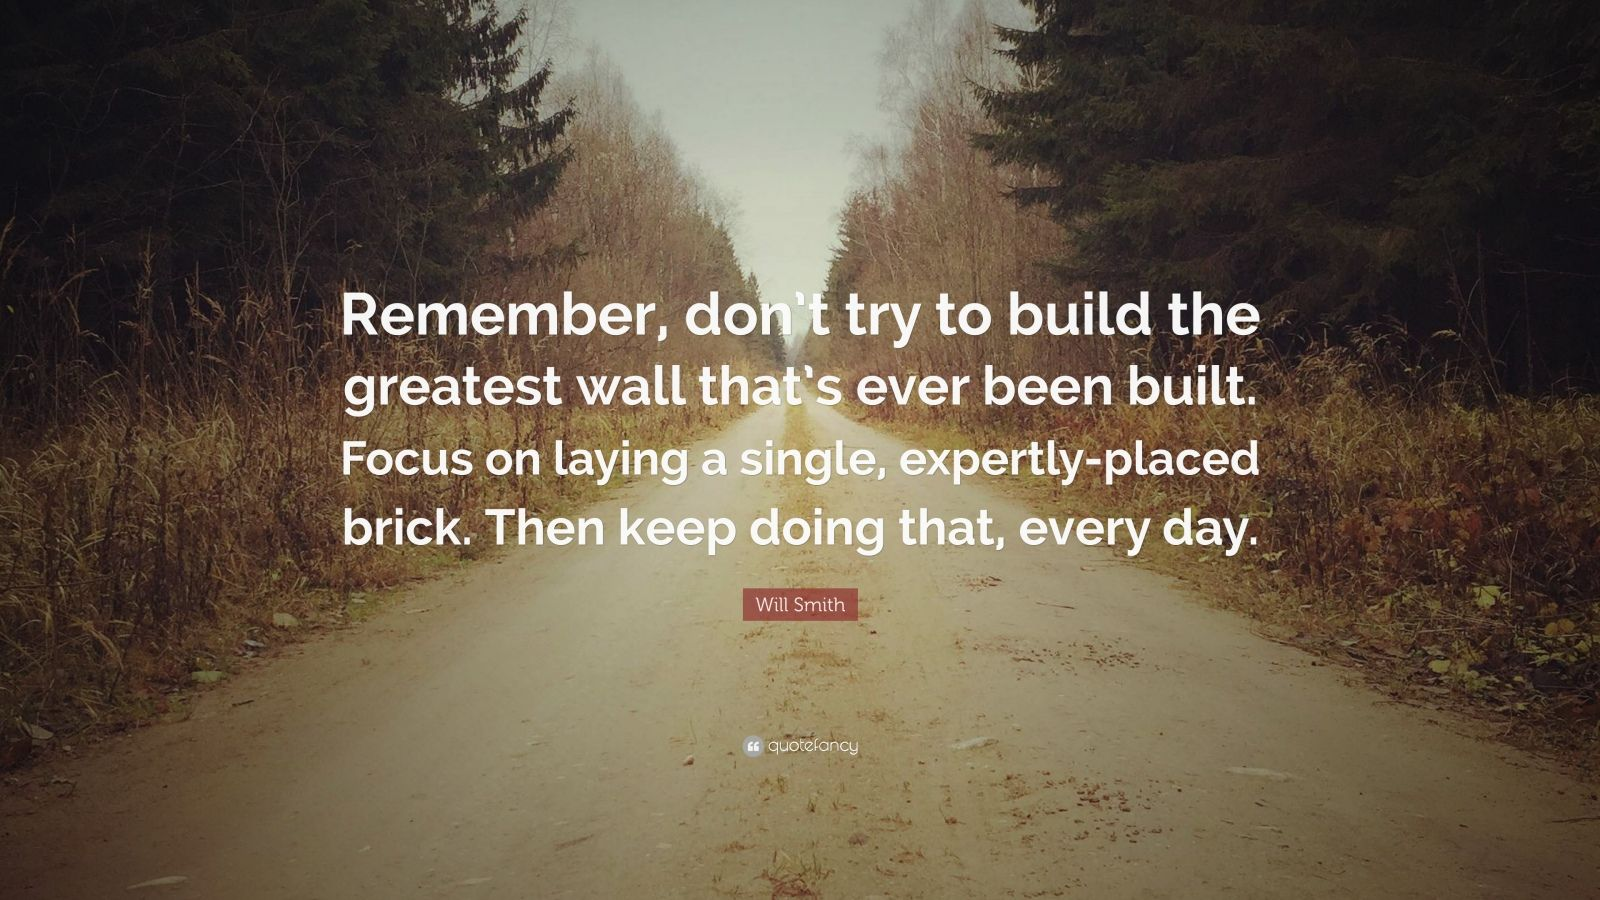 will smith quote   u201cremember  don u2019t try to build the